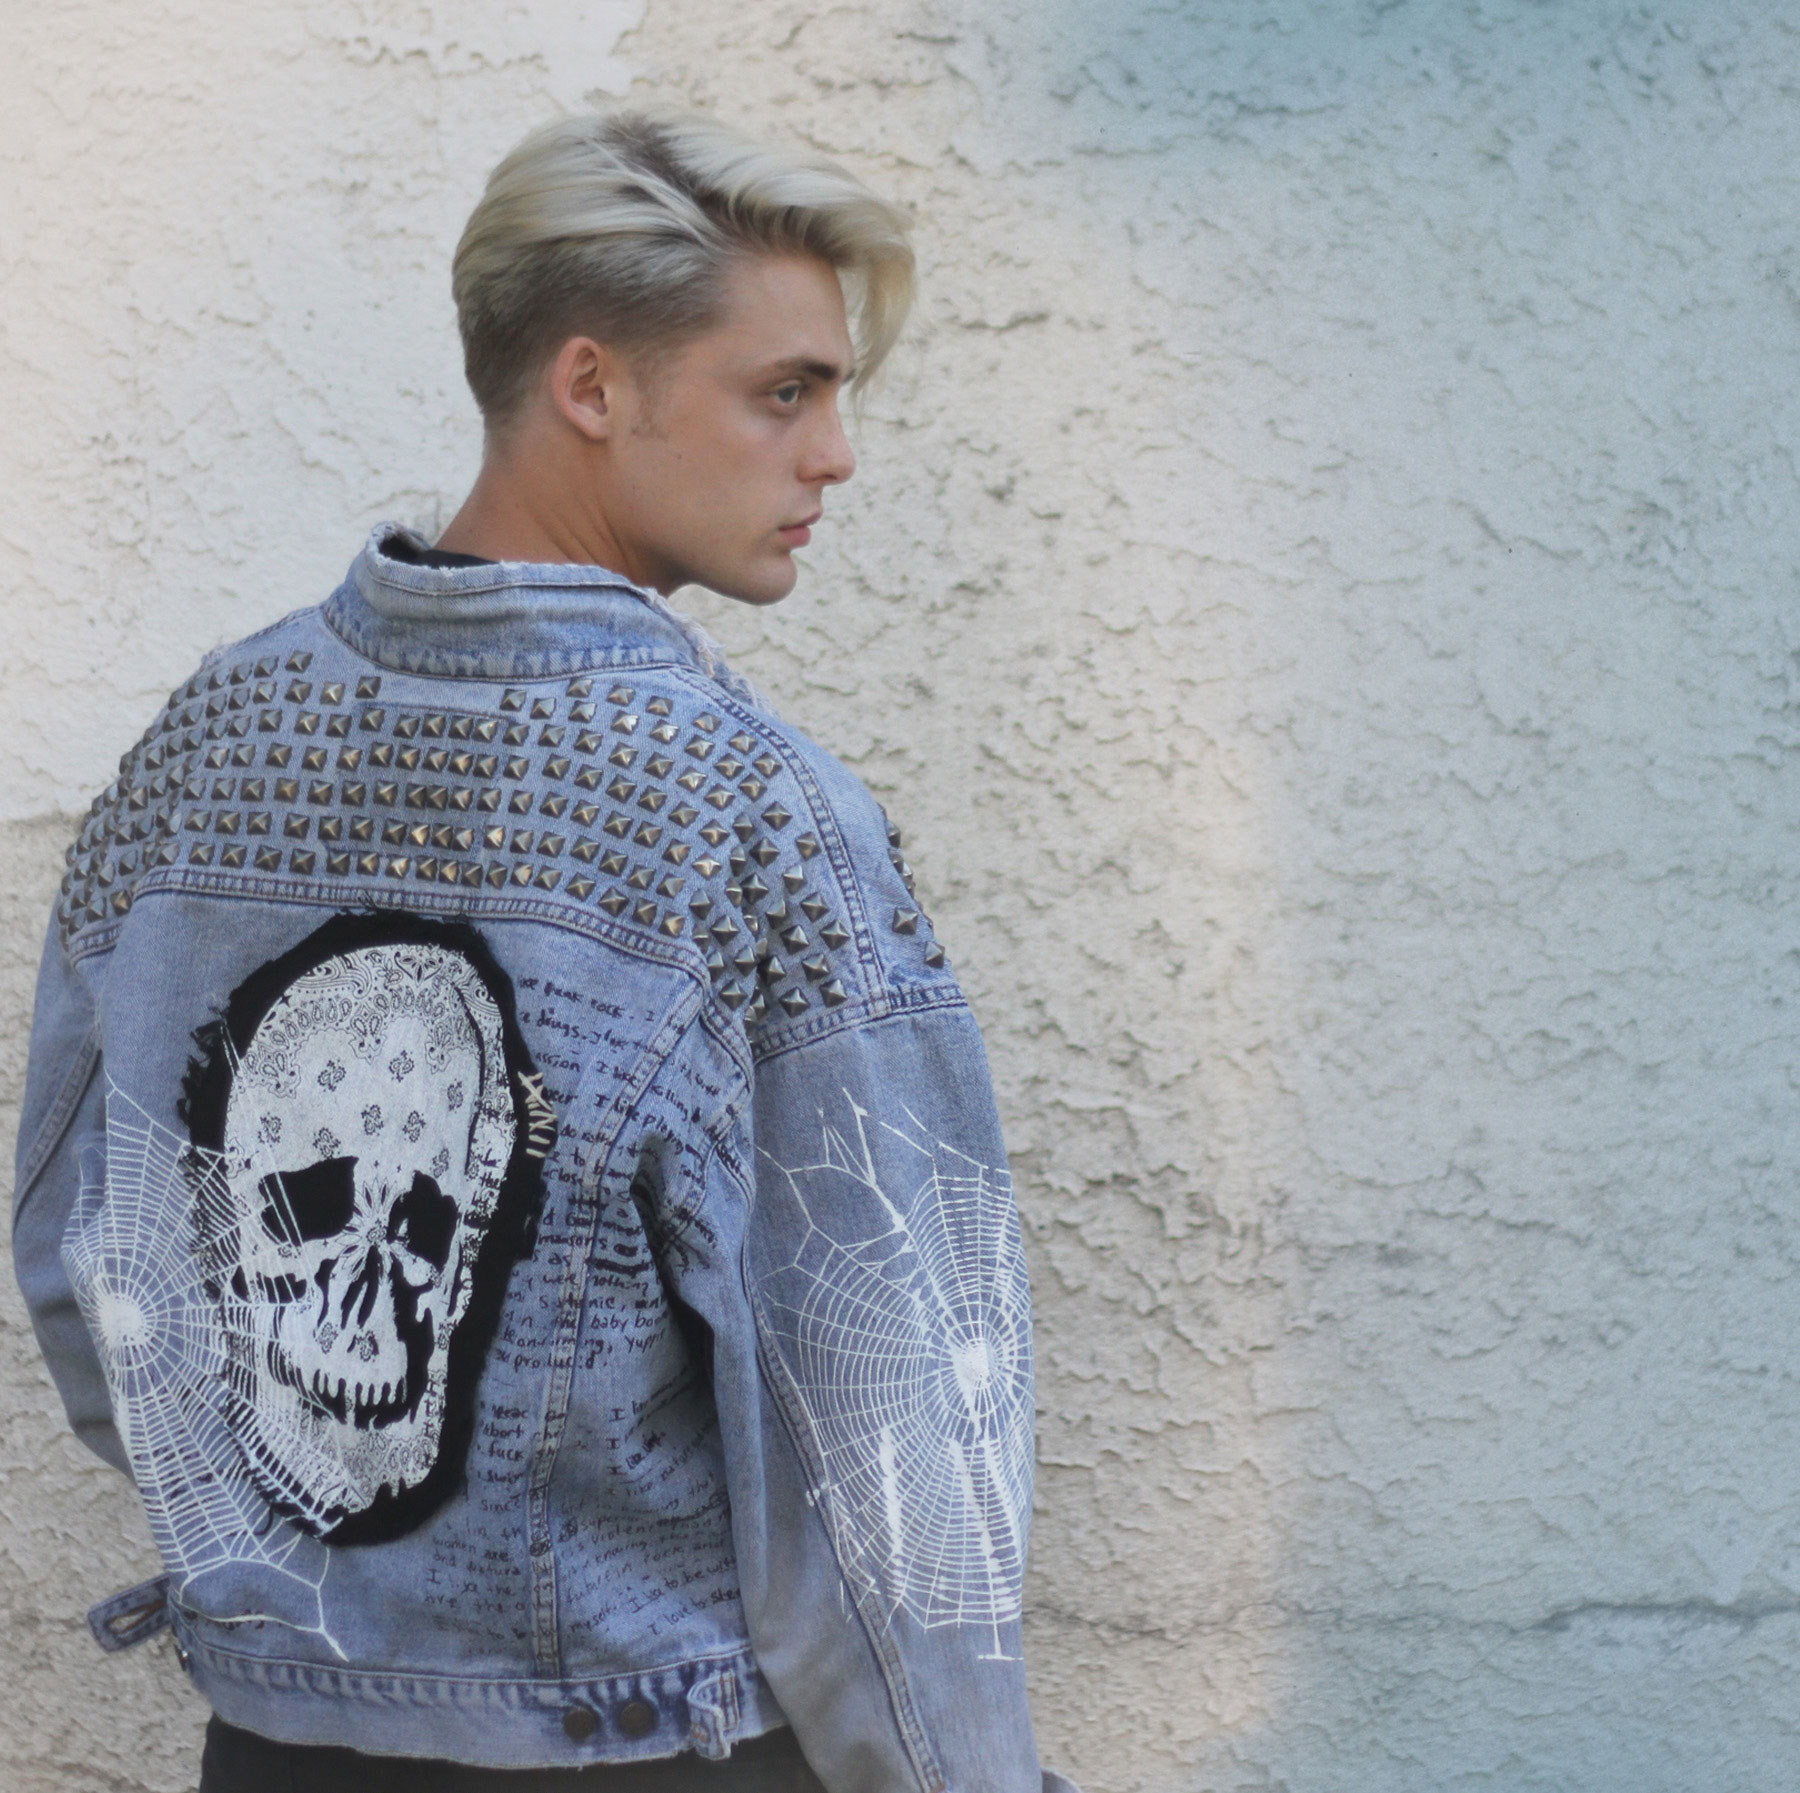 Custom Skull Denim Jacket Drones Clothing